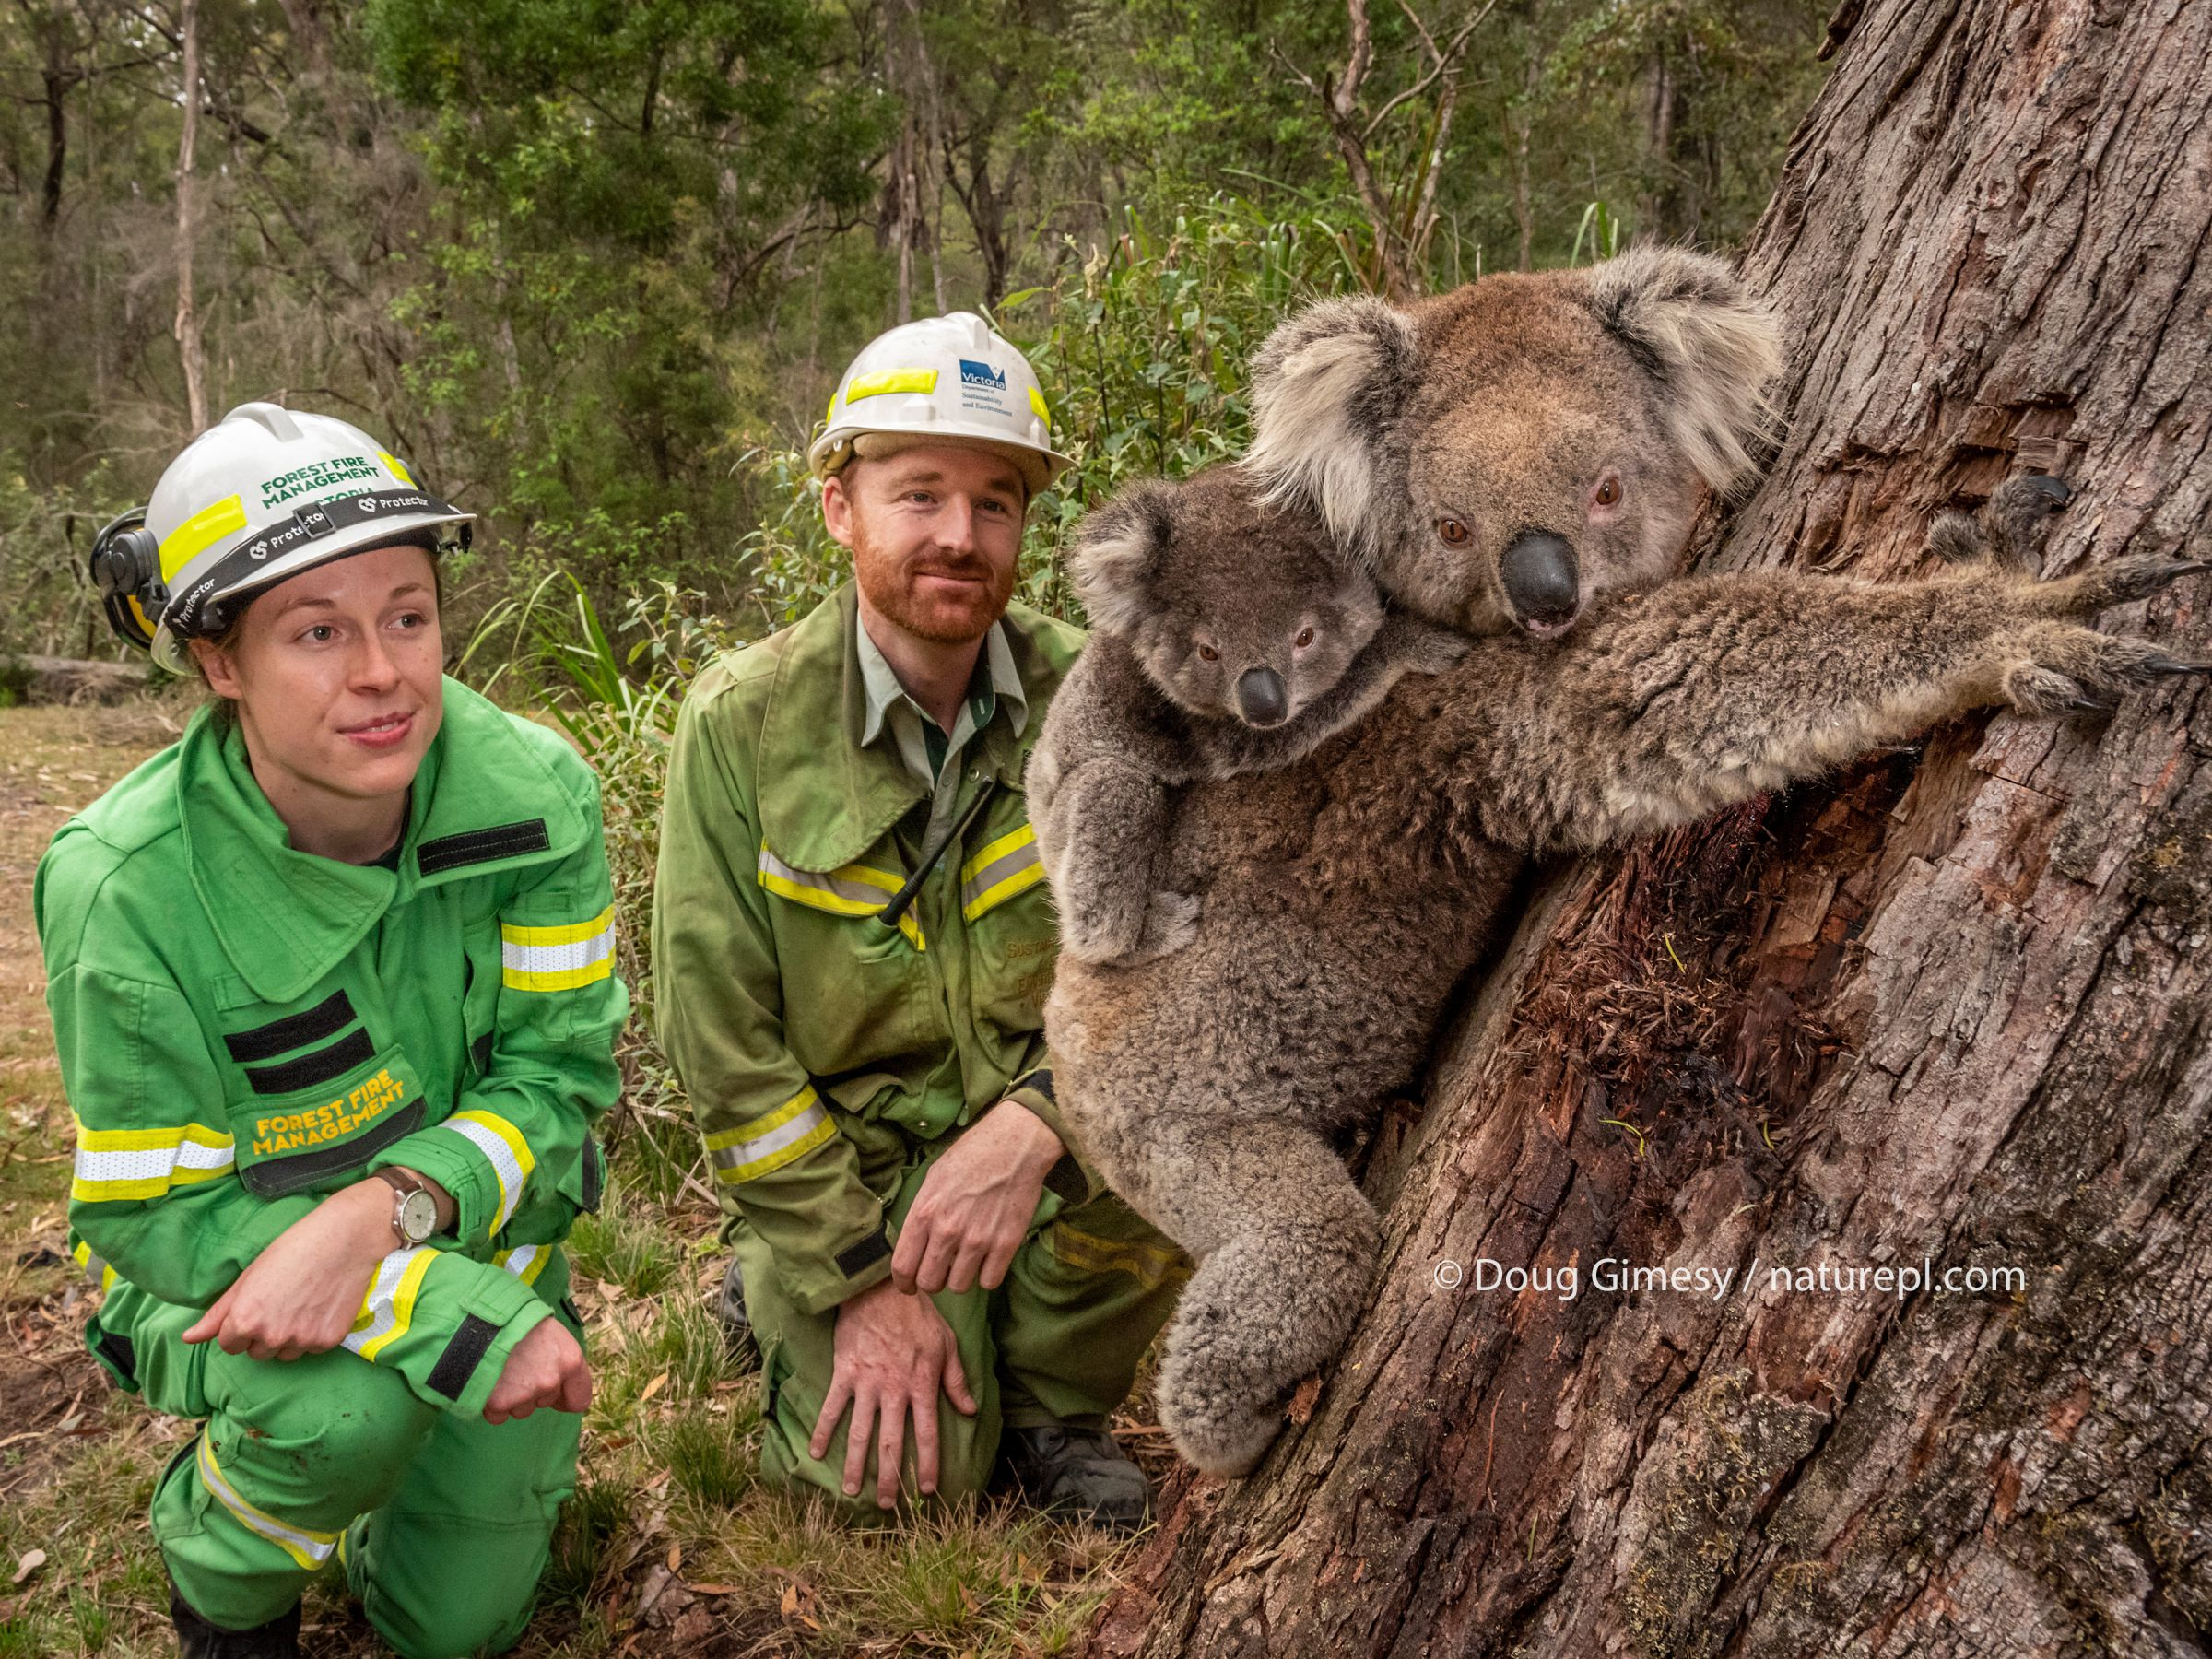 Forest and Wildlife officers Lachlan Clarke (right) and Emily Cordy watch on as a mother koala (Phascolarctos cinereus) and her joey are released. Editorial use only. Model released